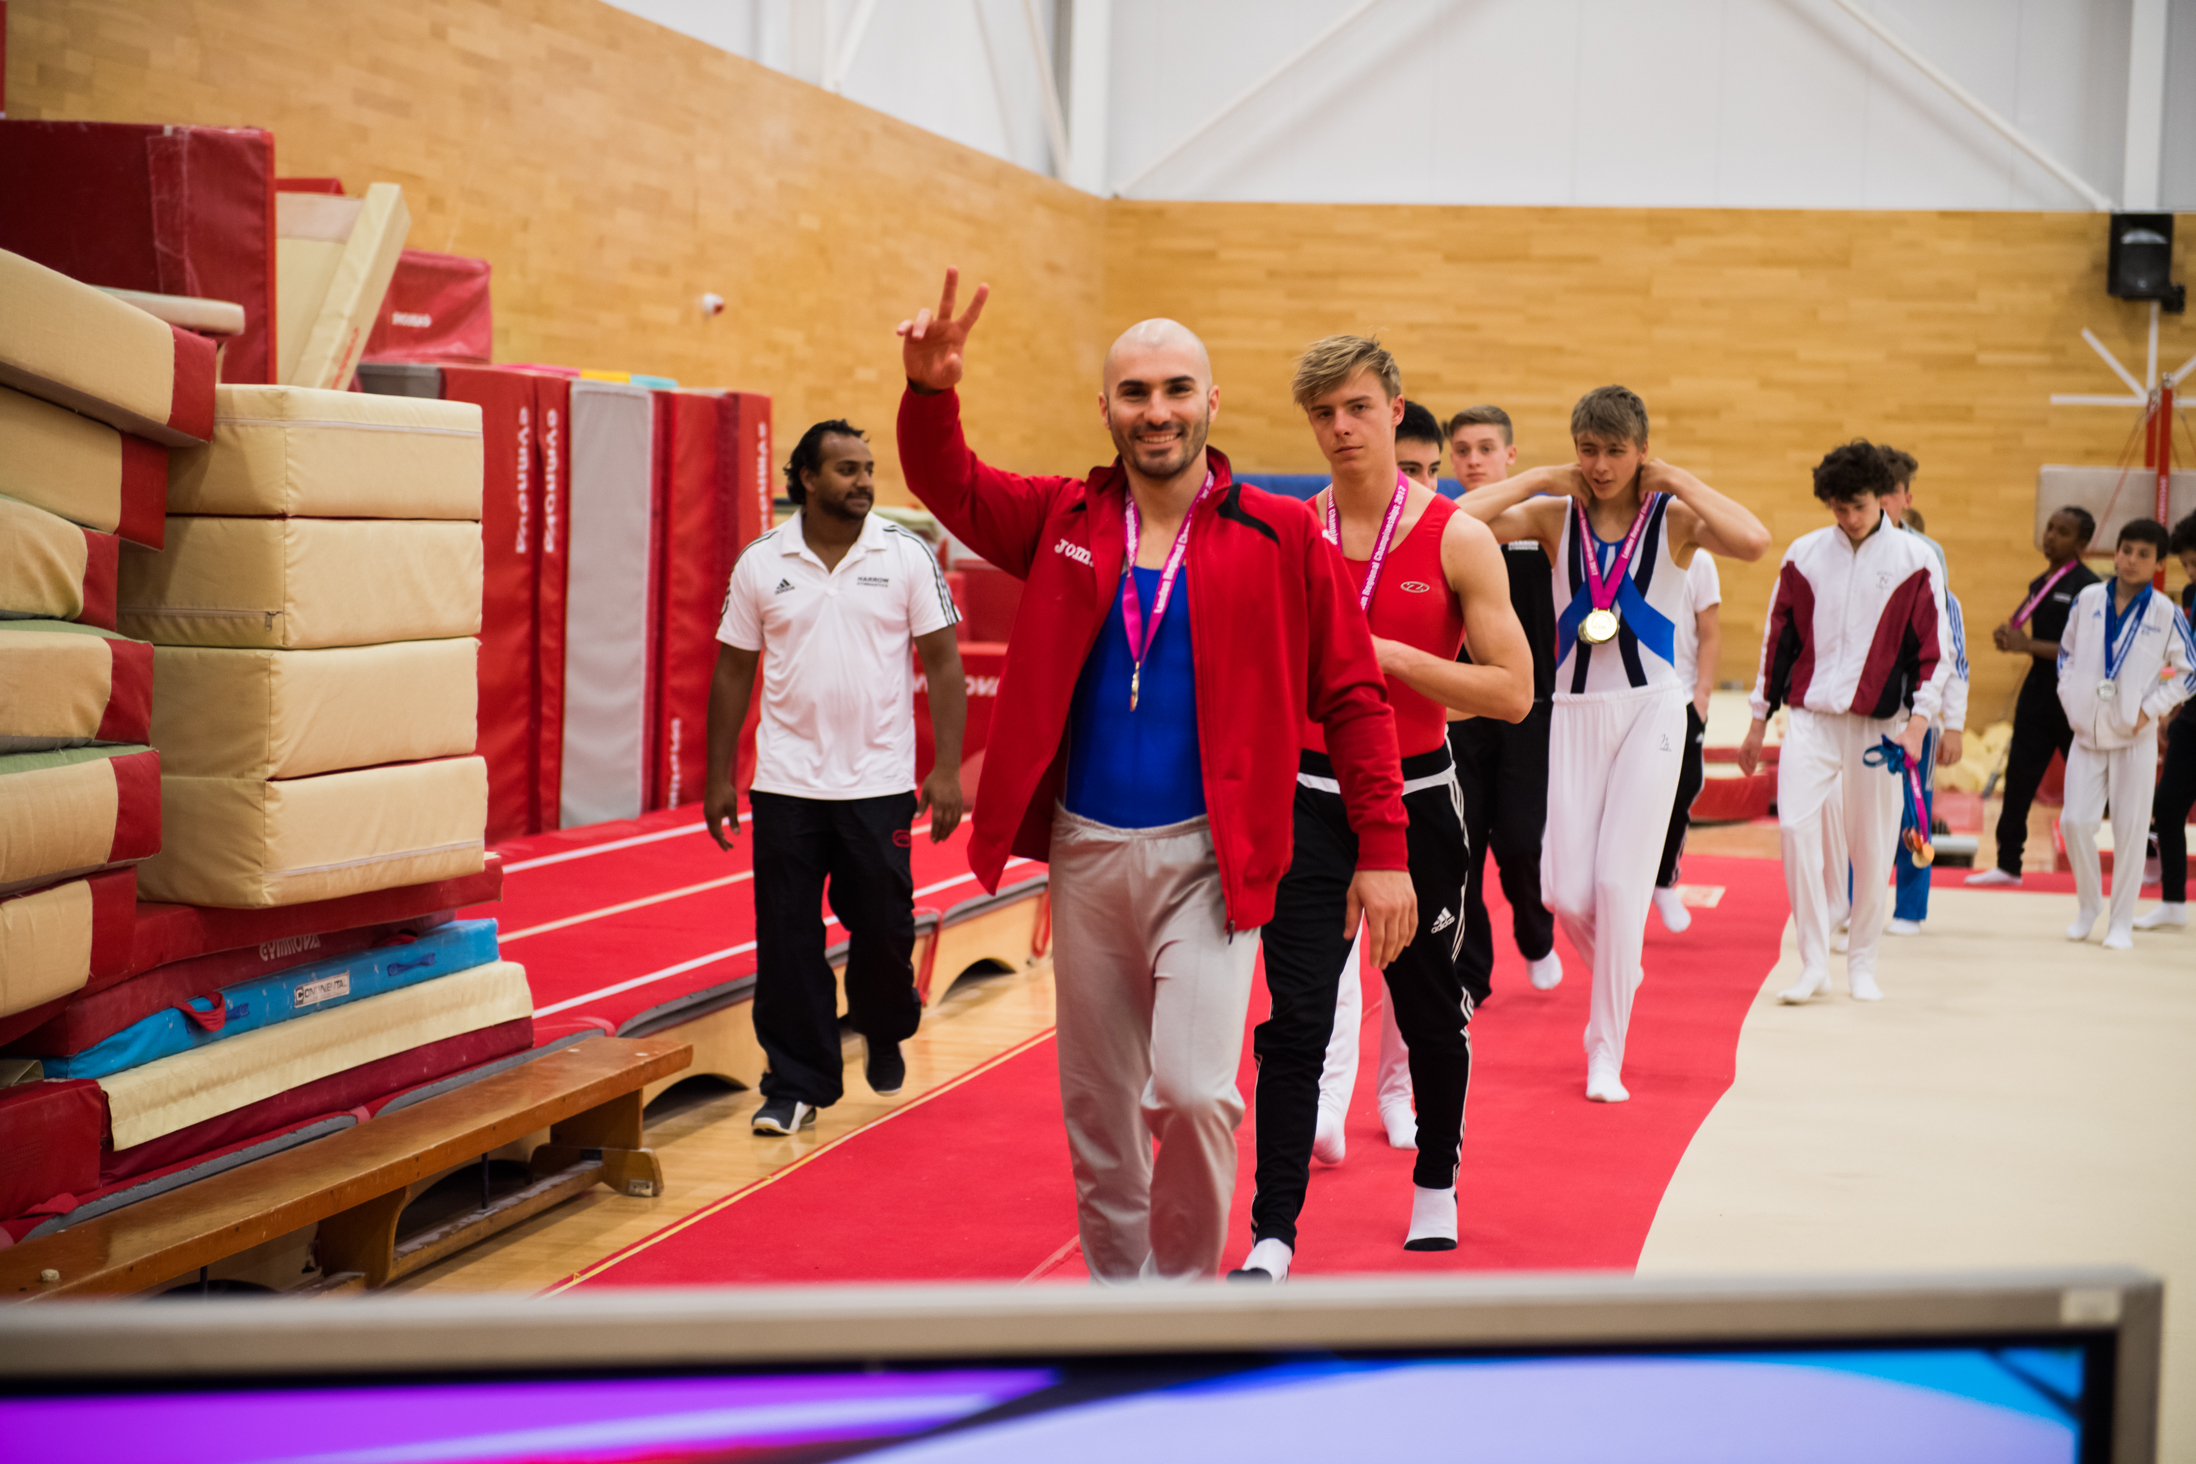 Stef from Elite Gymnastics Academy at the 2017 London Regional